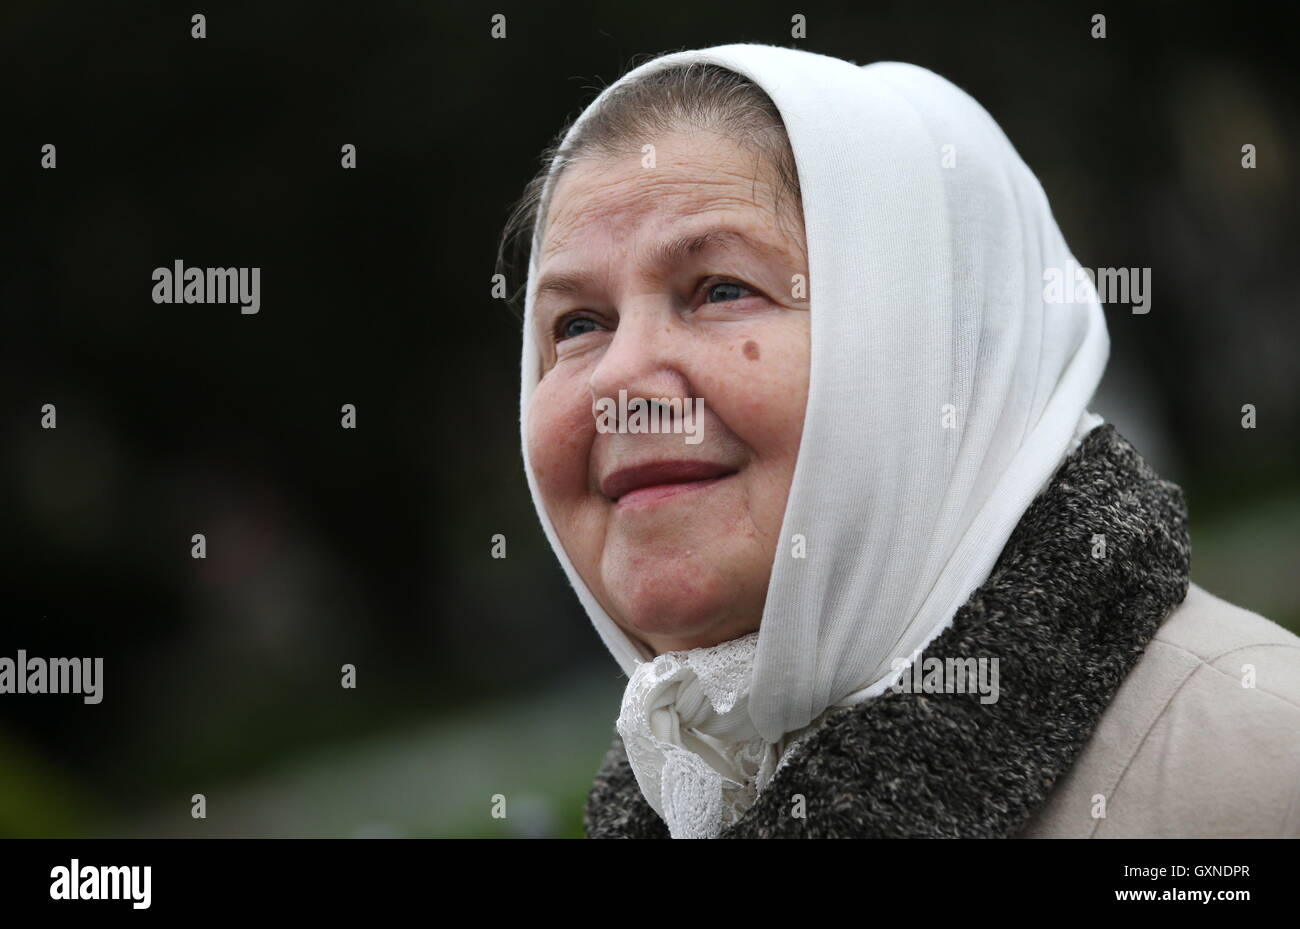 ST PETERSBURG, RUSSIA – SEPTEMBER 17, 2016: Zinaida, the mother of Russian Orthodox priest Gleb Grozovsky, stages Stock Photo